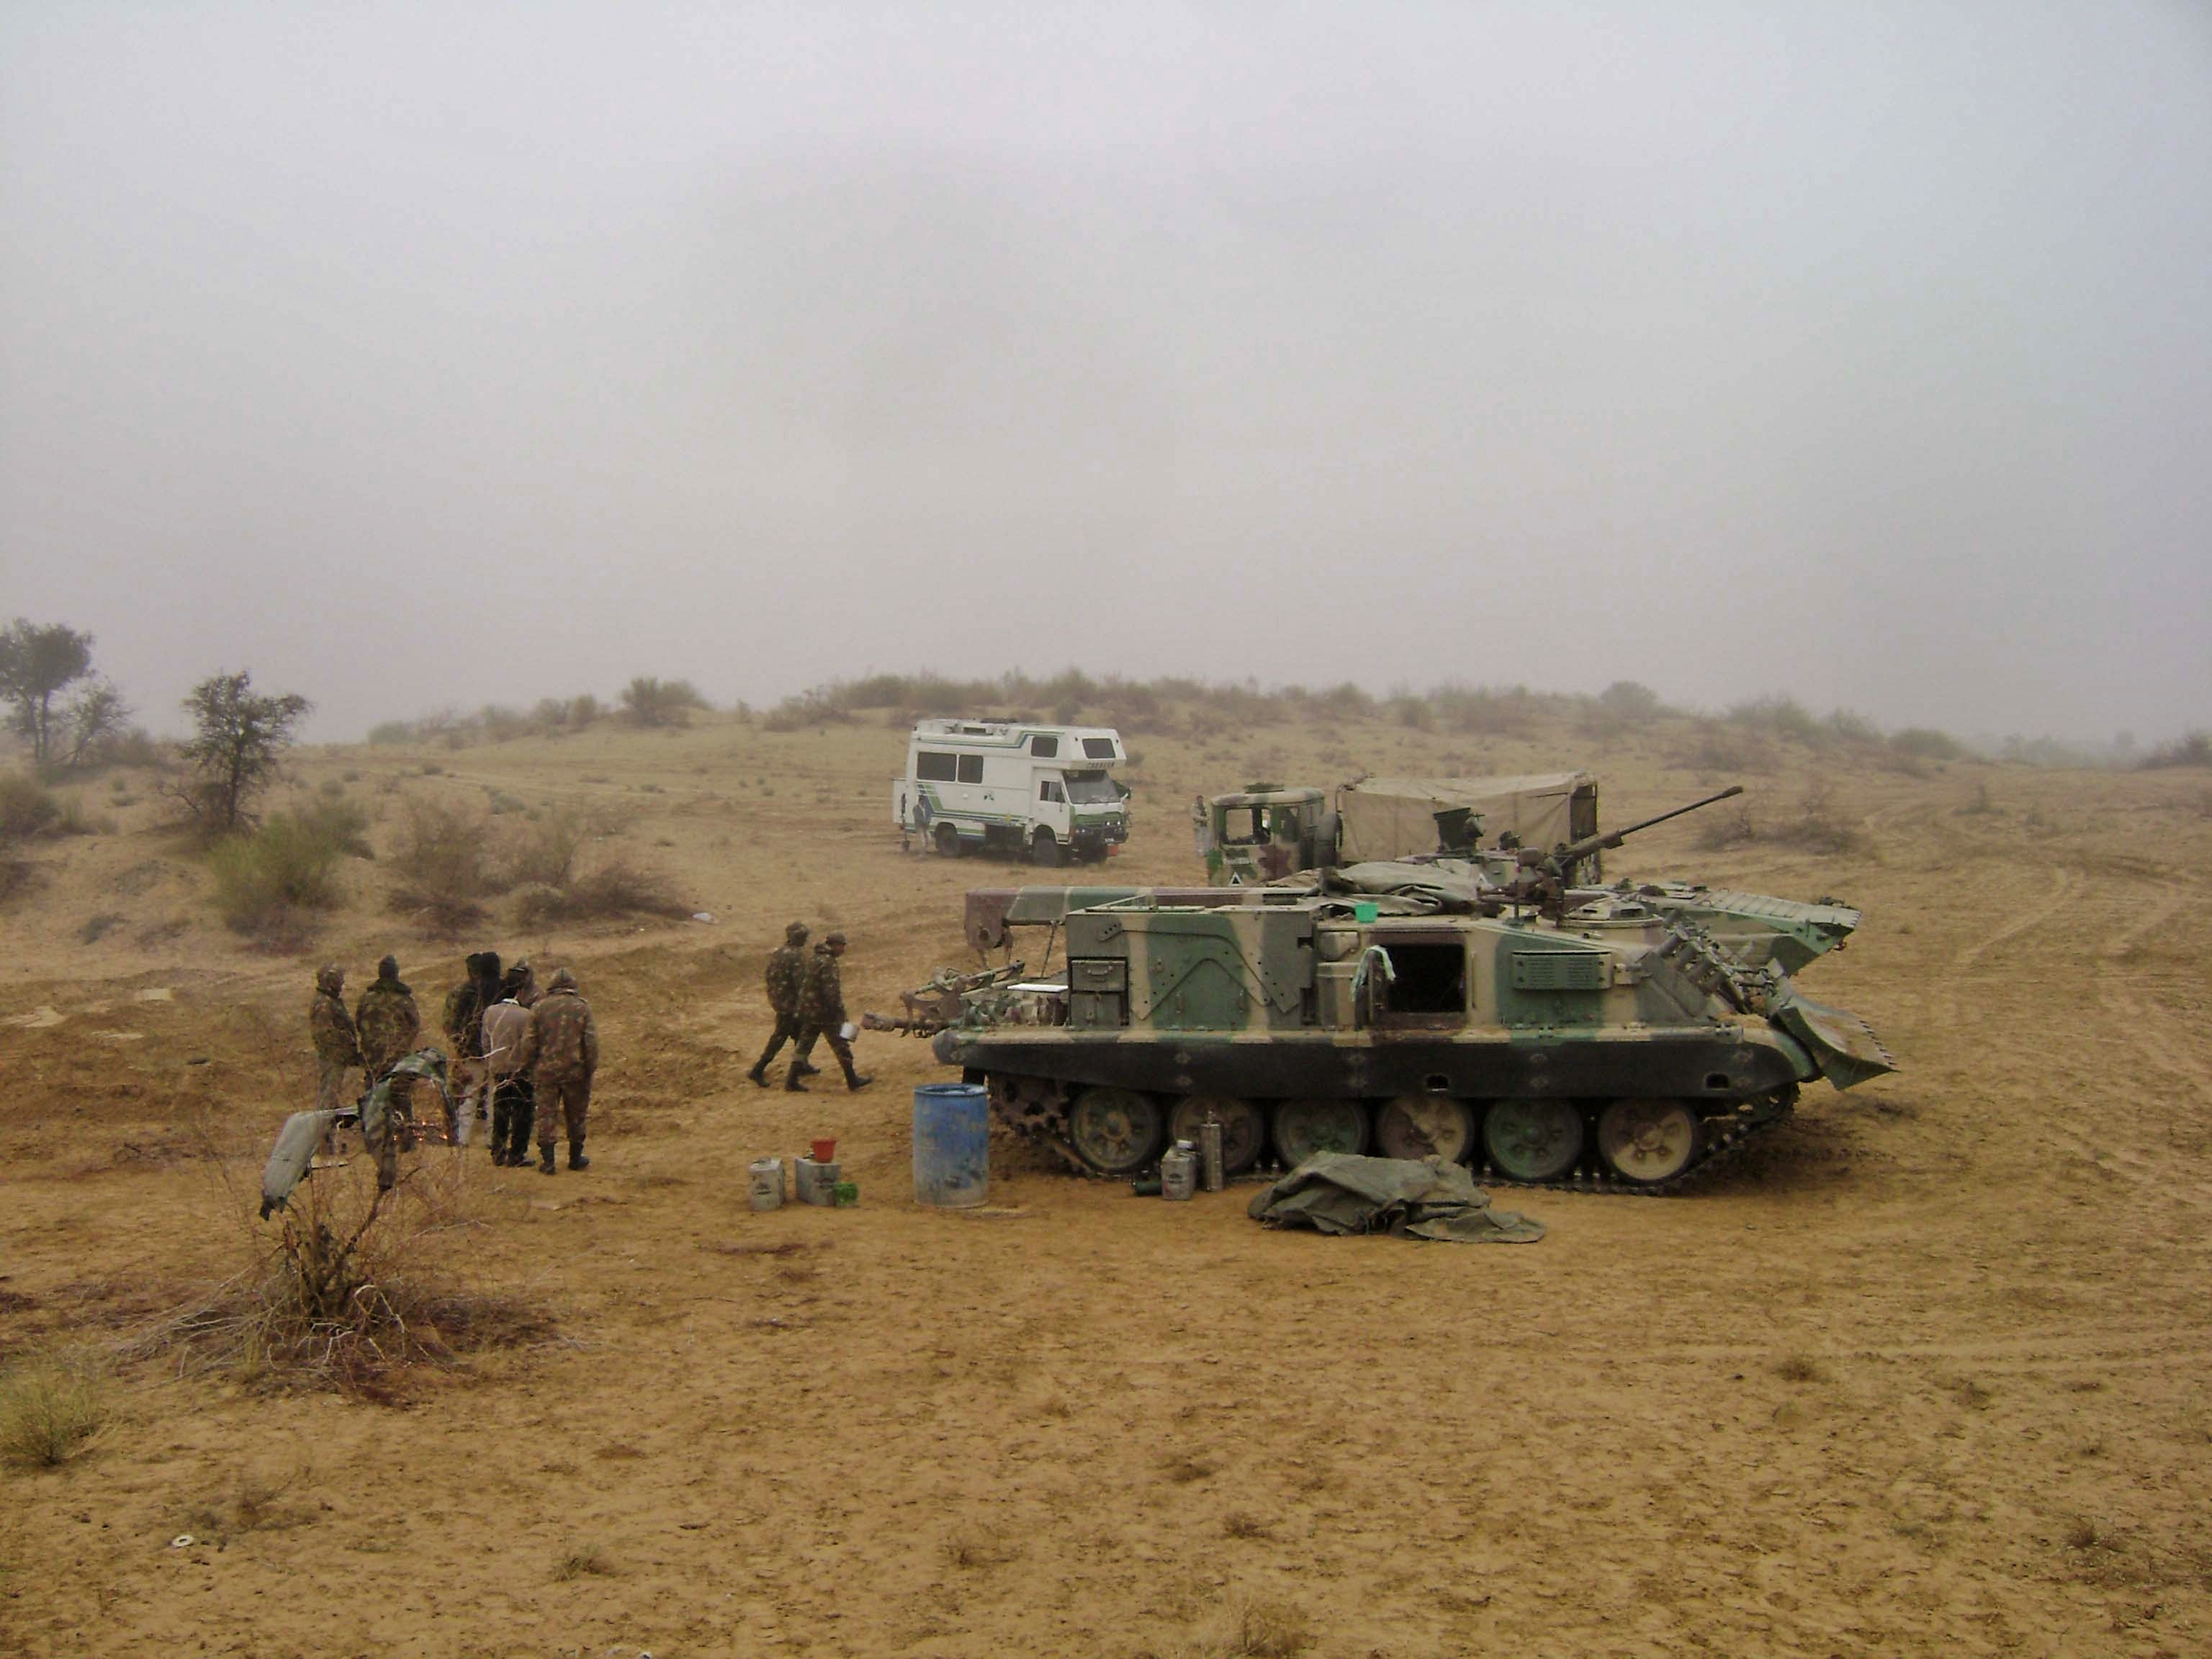 middle of desert in ganganagar army camp